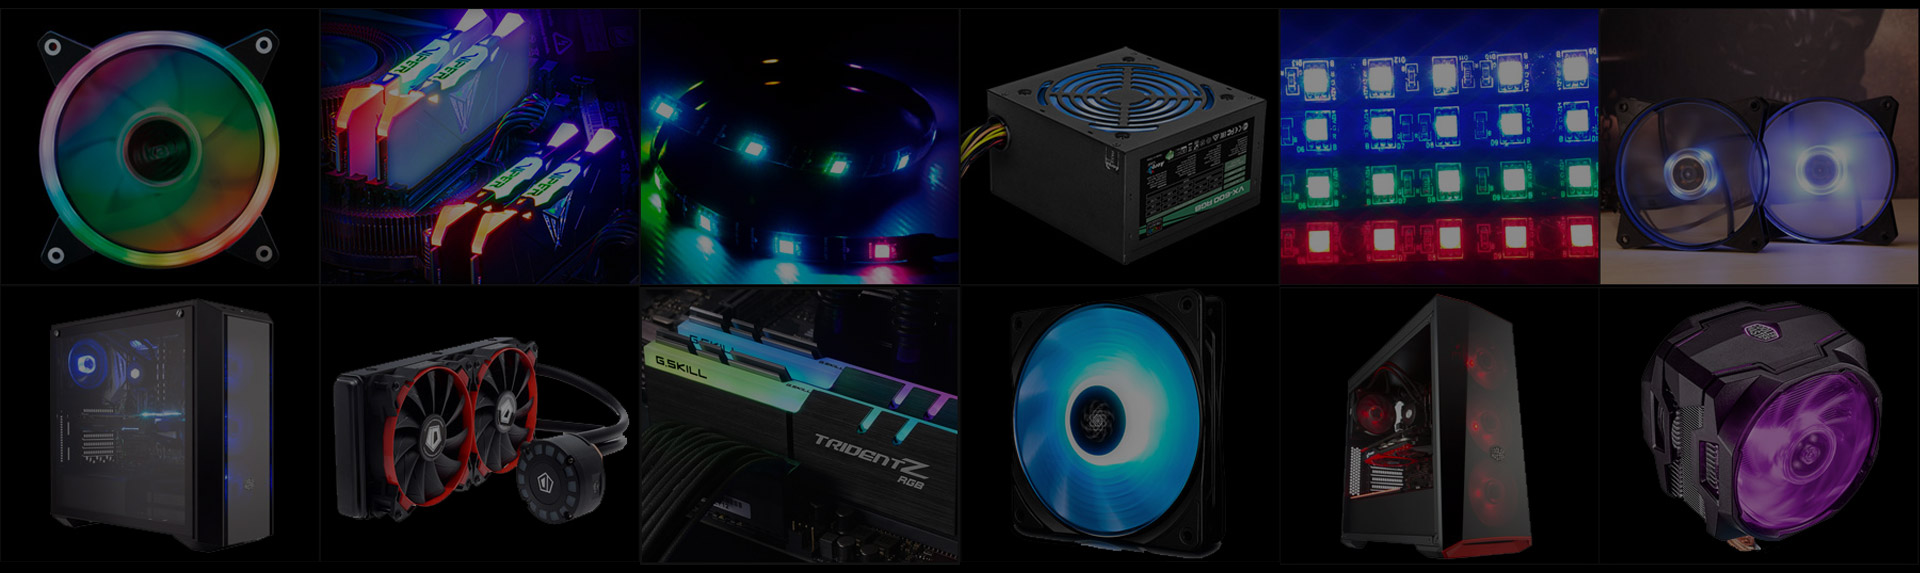 RGB_accessories and components